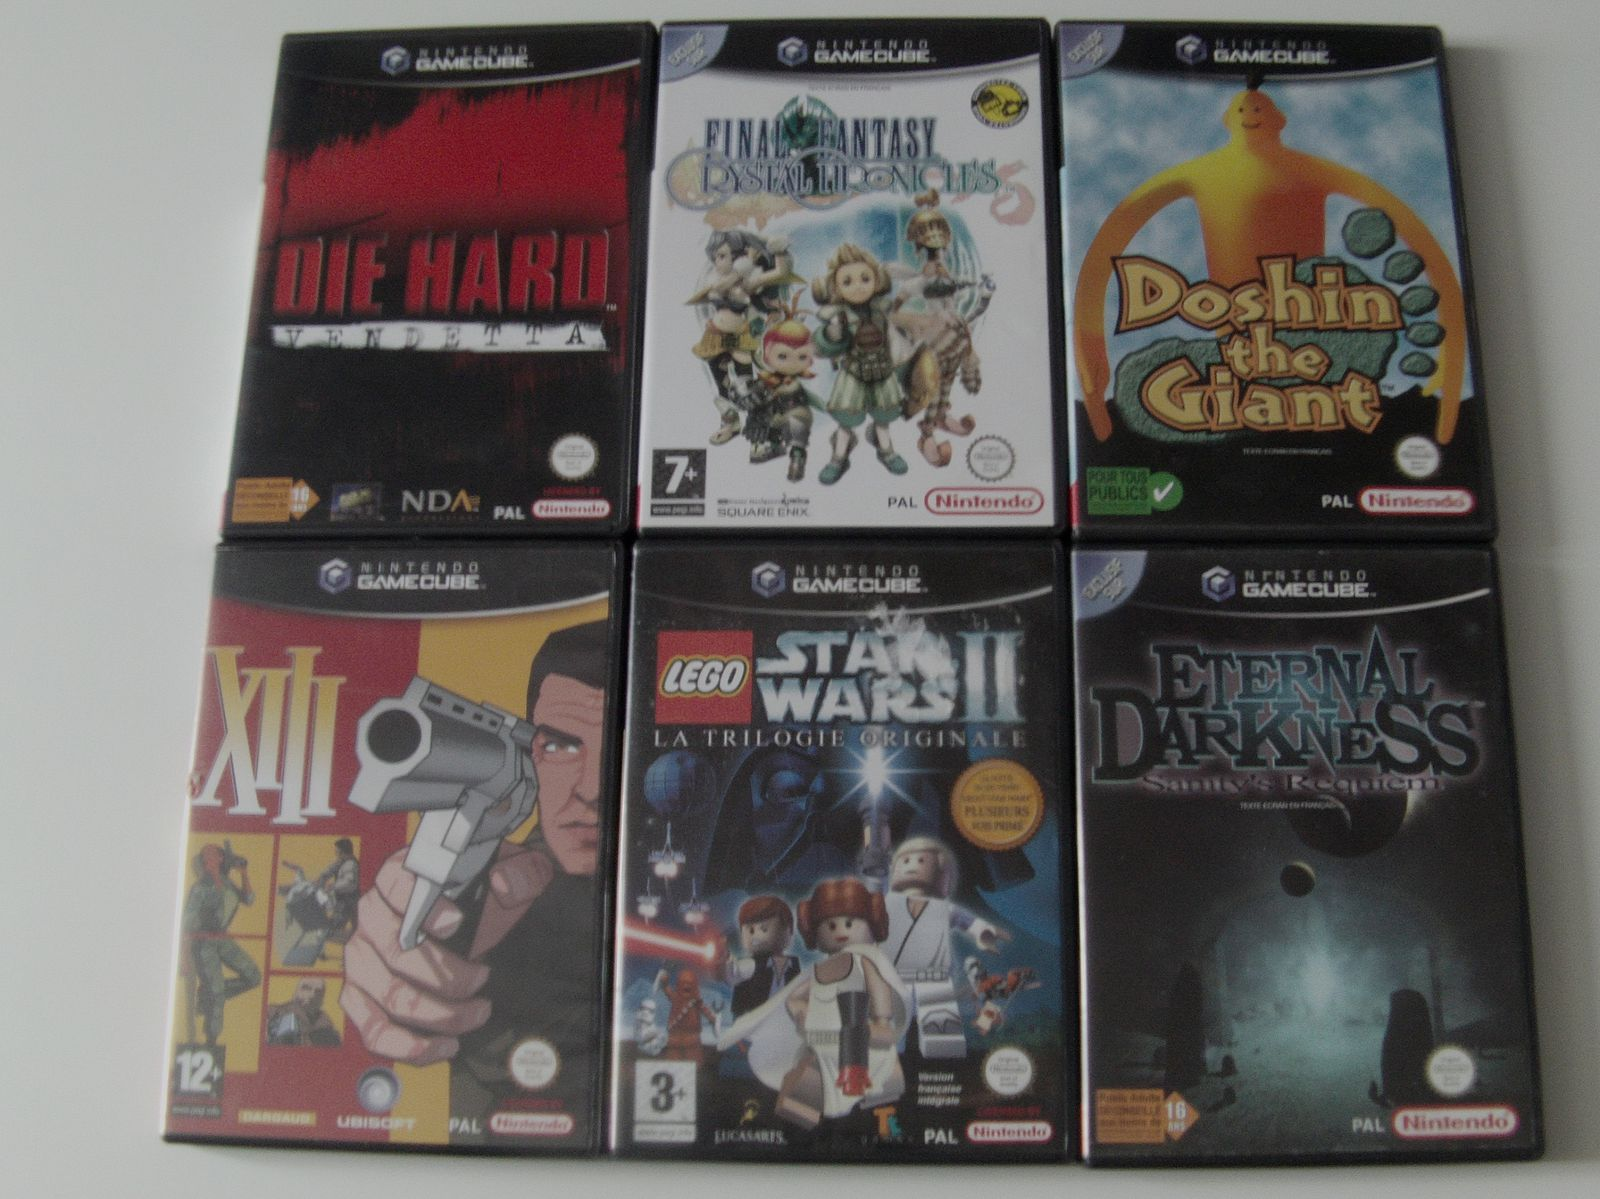 [Ma collection] Mes jeux Game Cube #1